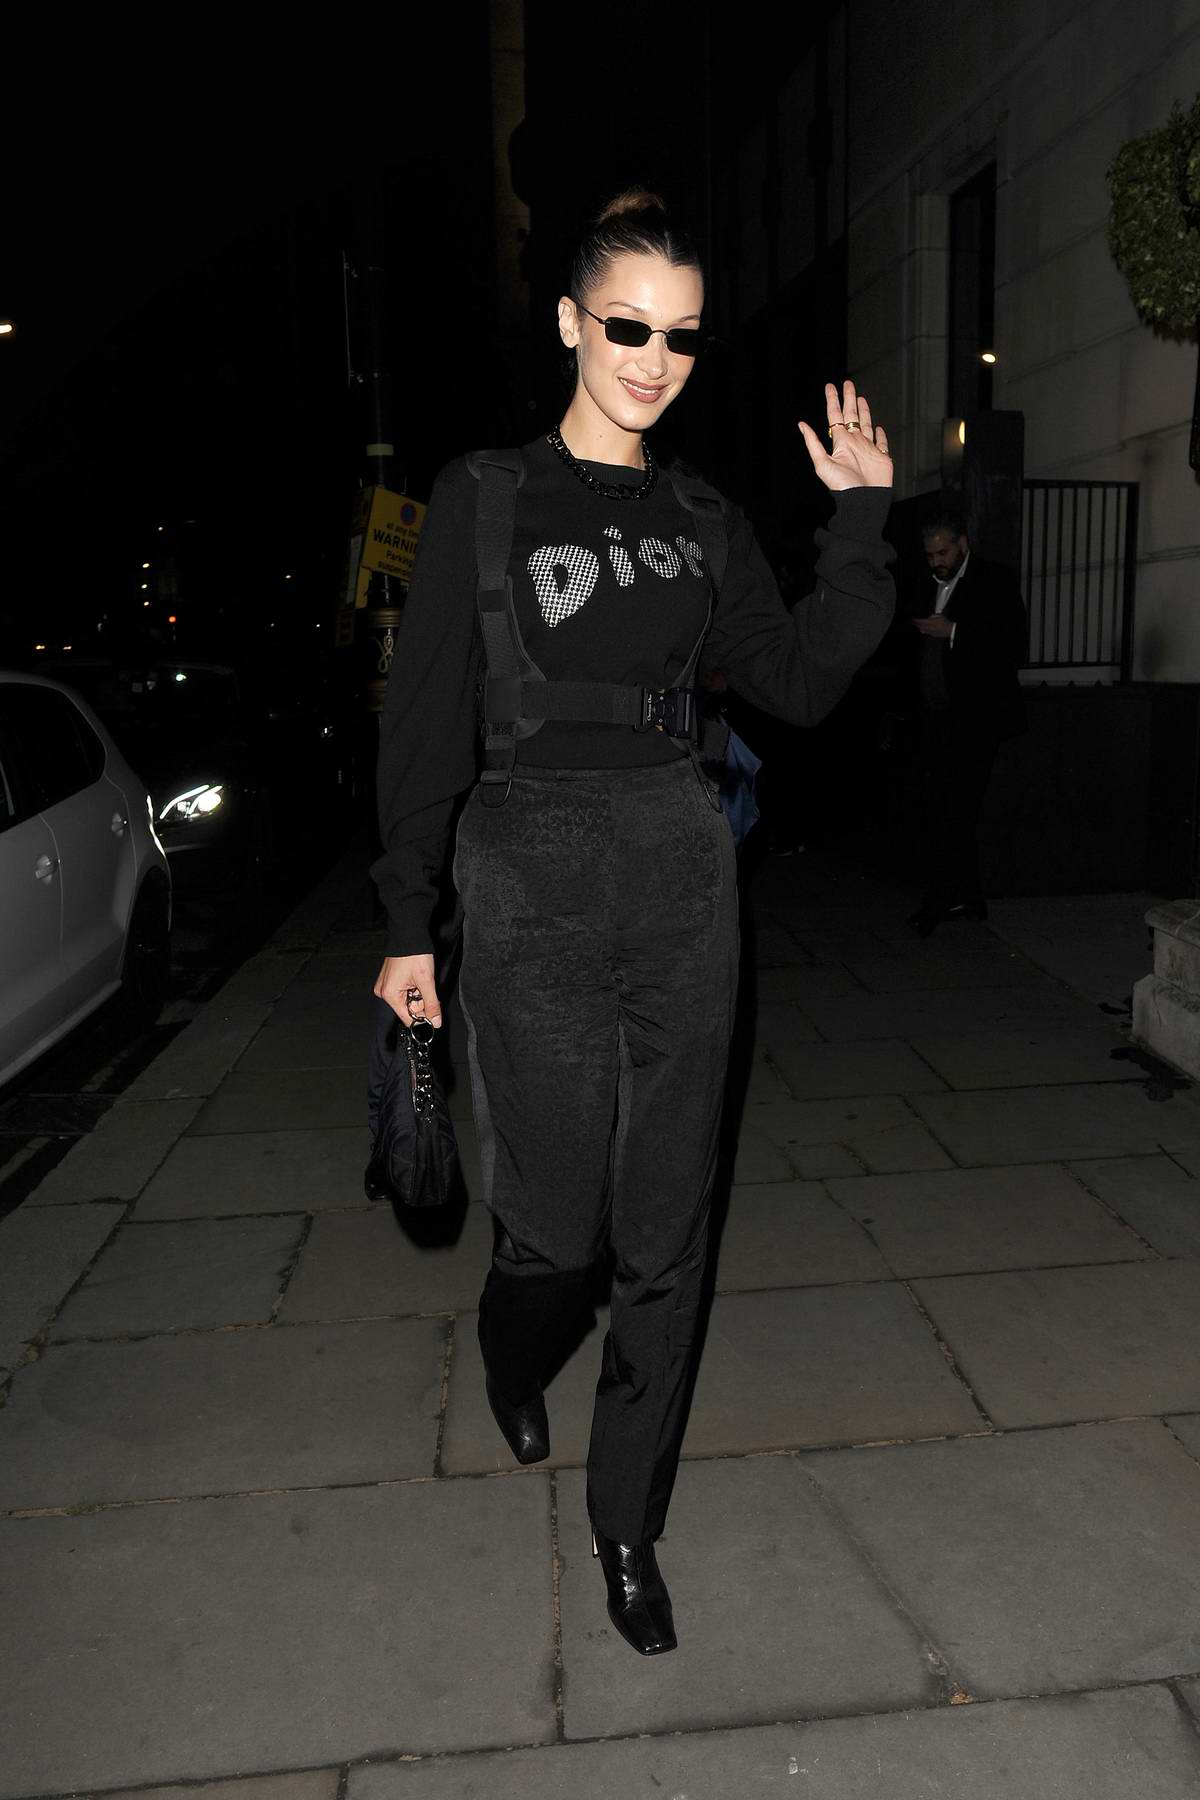 Bella Hadid sports an all-black Dior ensemble as she attends a Christian Dior party in London, UK